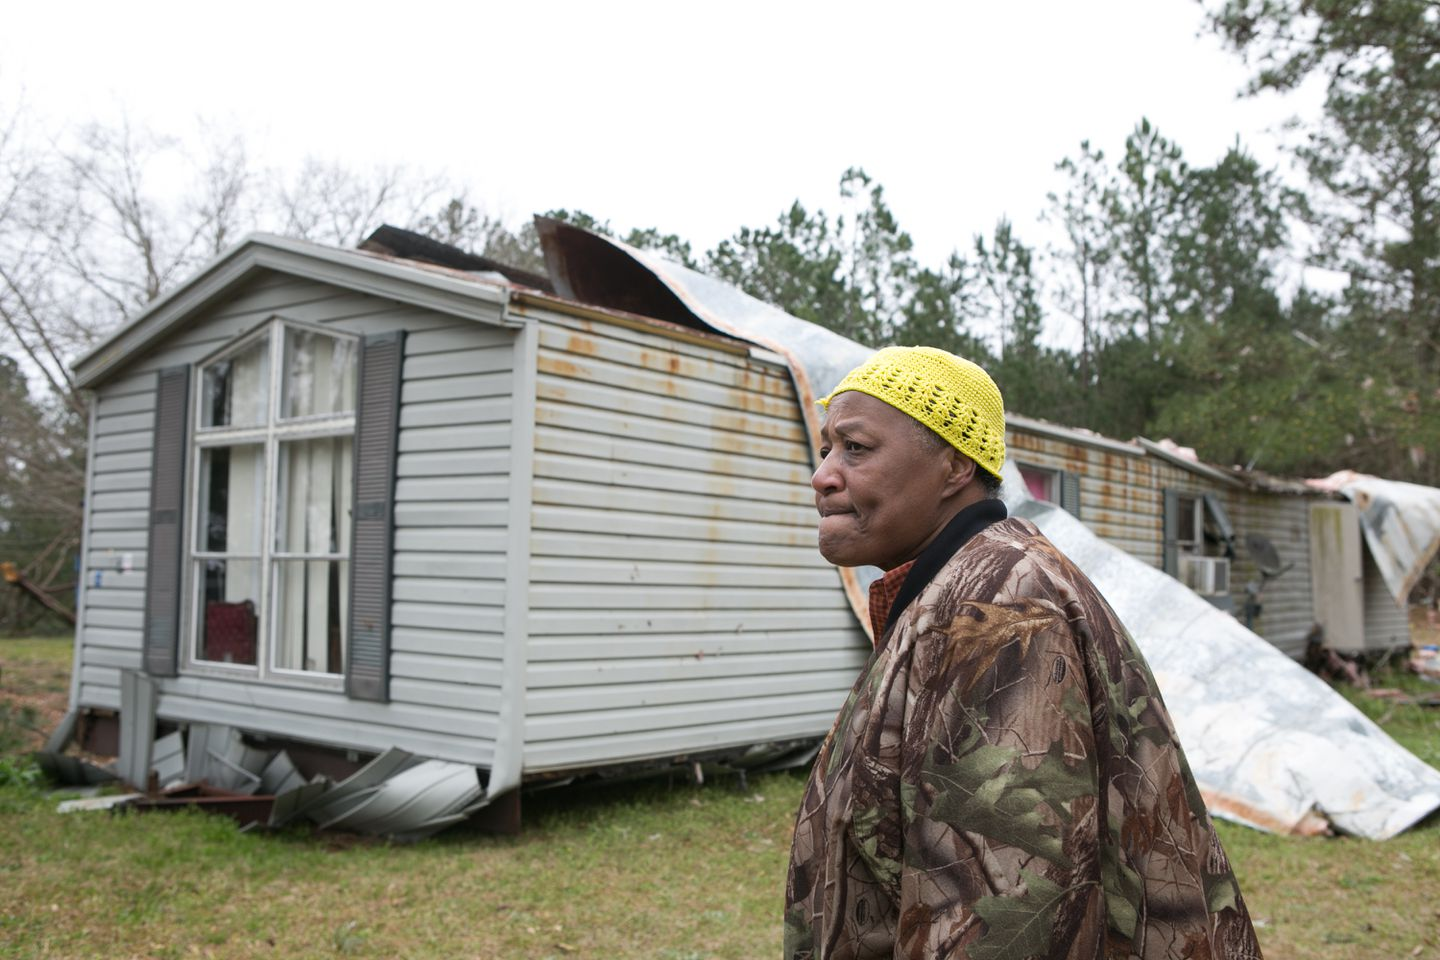 """Some of the deadliest tornado disasters in history have taken place not on the prairie, but in the densely wooded hills of what storm chasers refer to as """"Dixie Alley."""""""